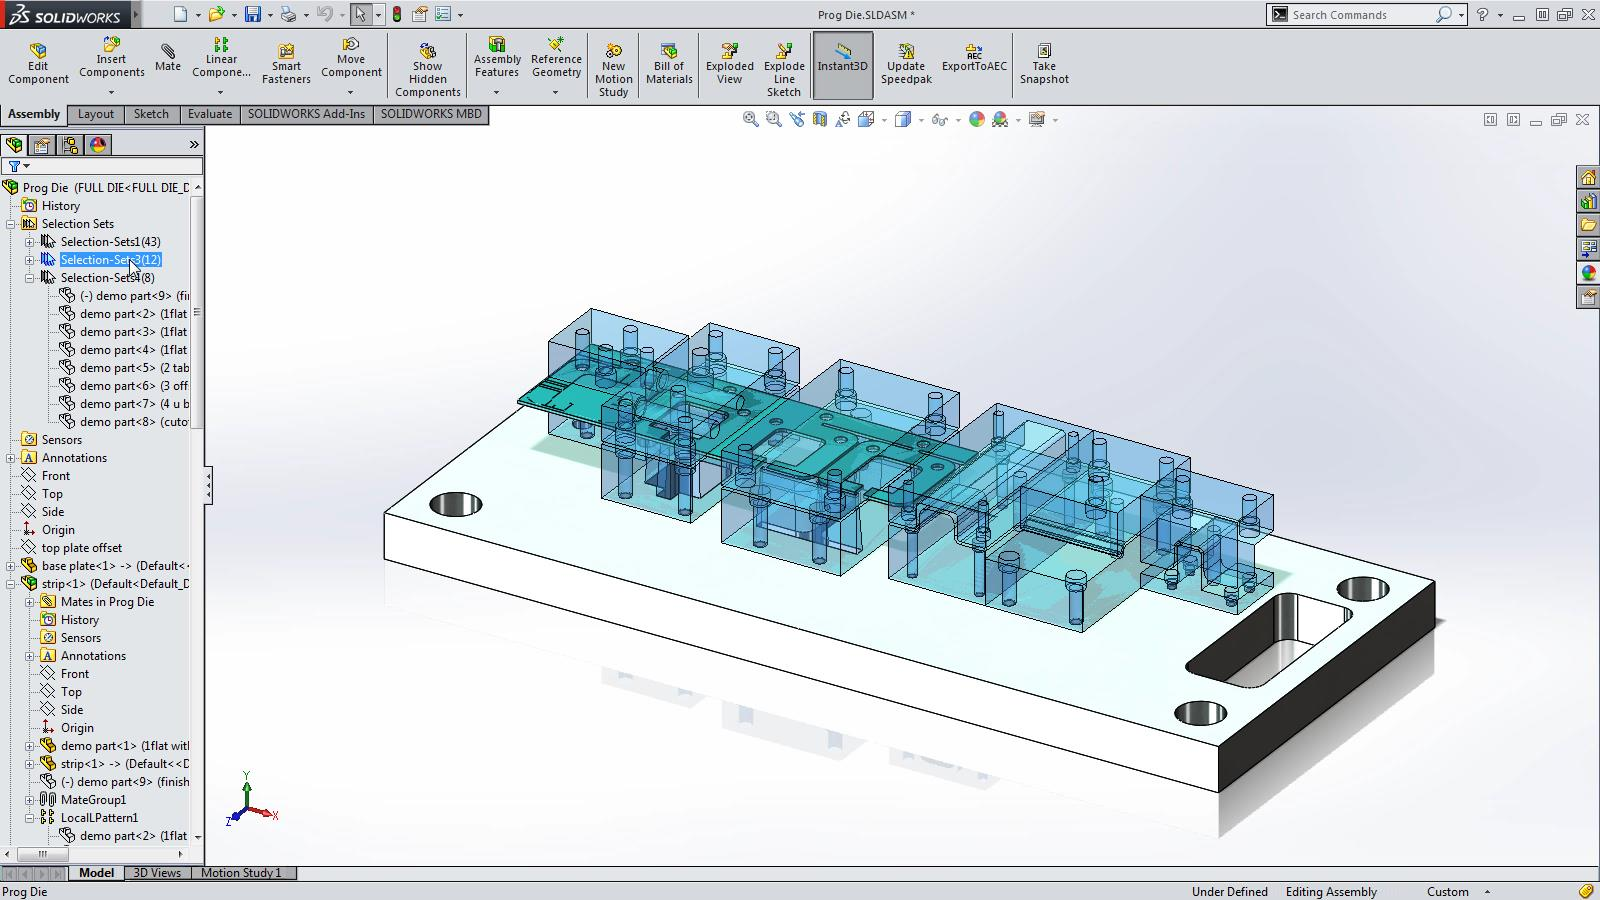 SOLIDWORKS 2015 Sneak Peek: Selection Sets